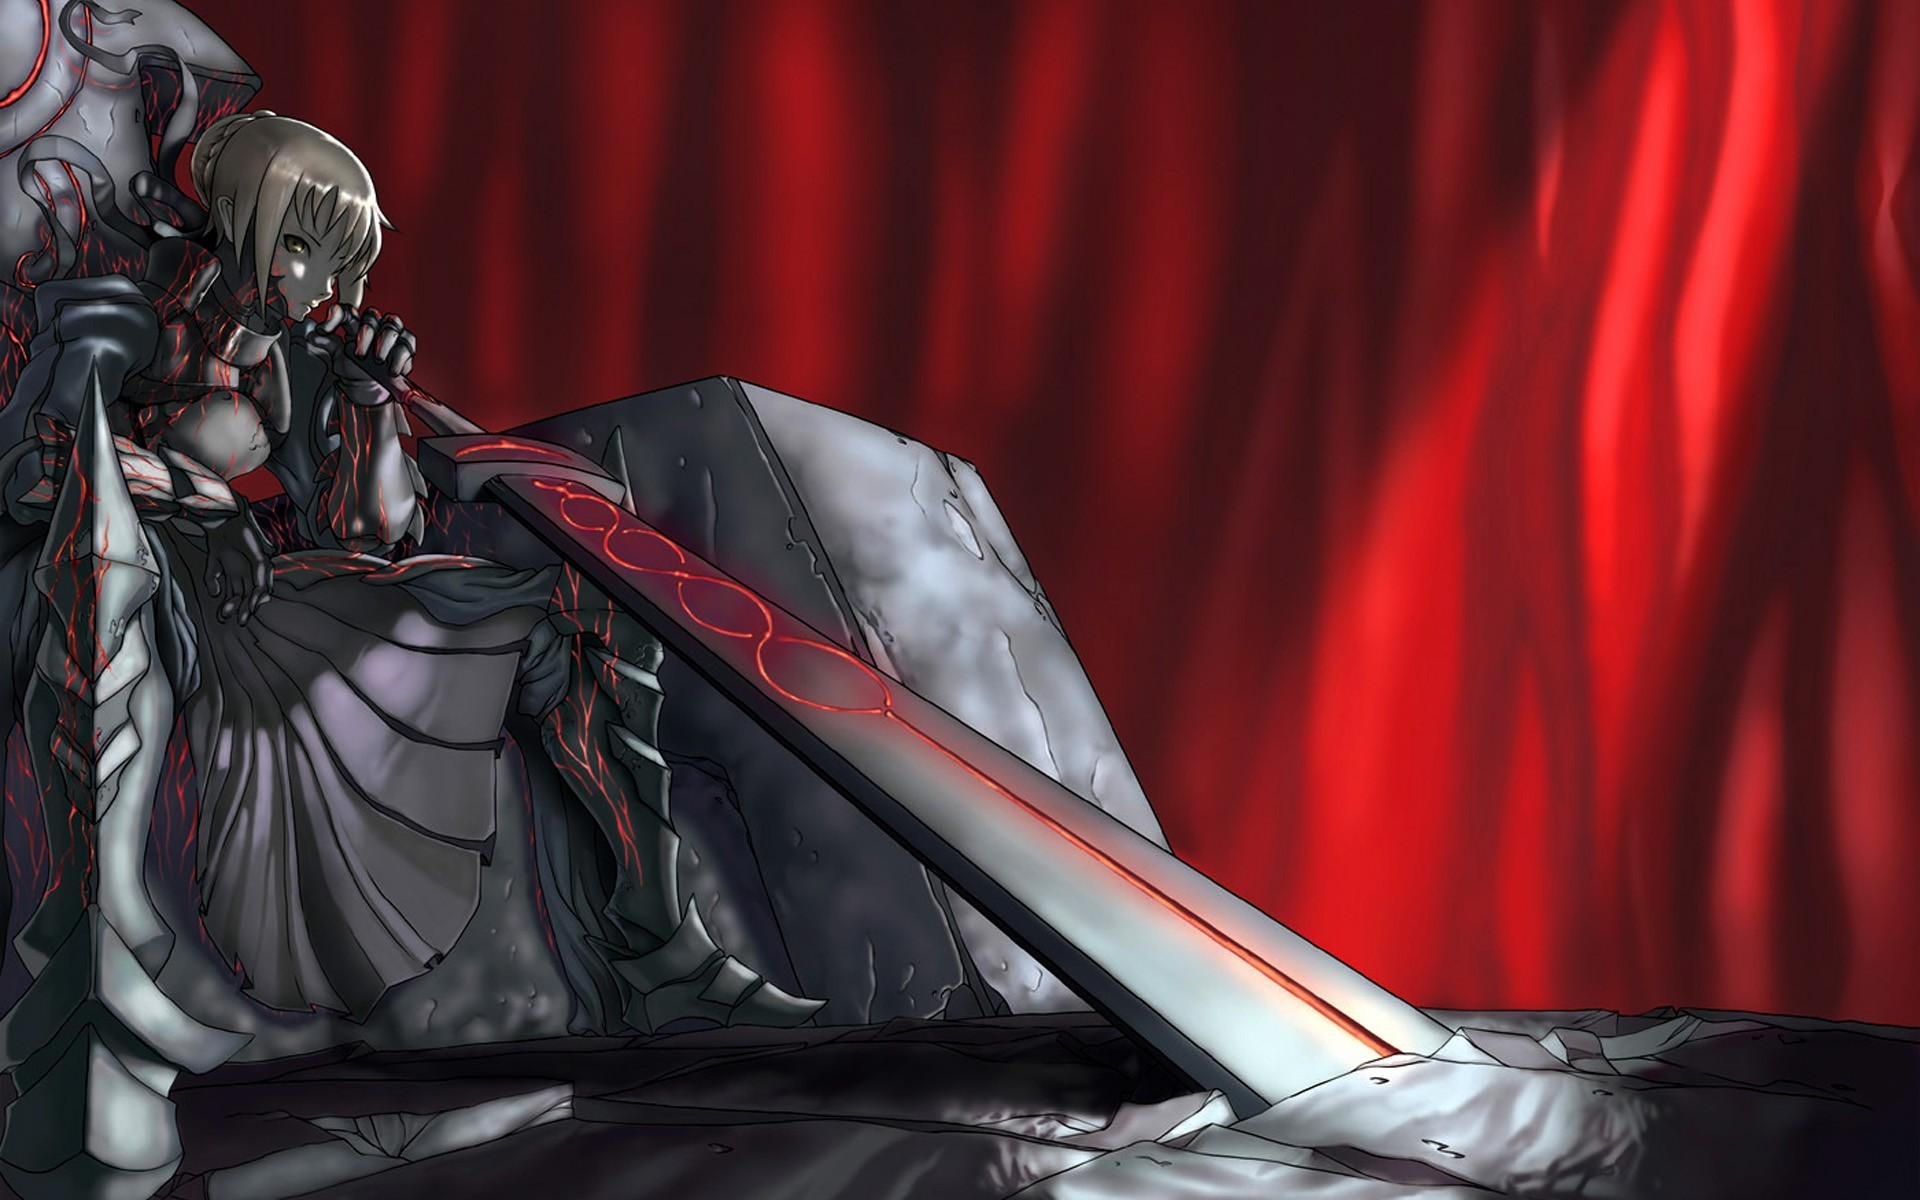 Saber   Fate stay night wallpaper 4659 1920x1200